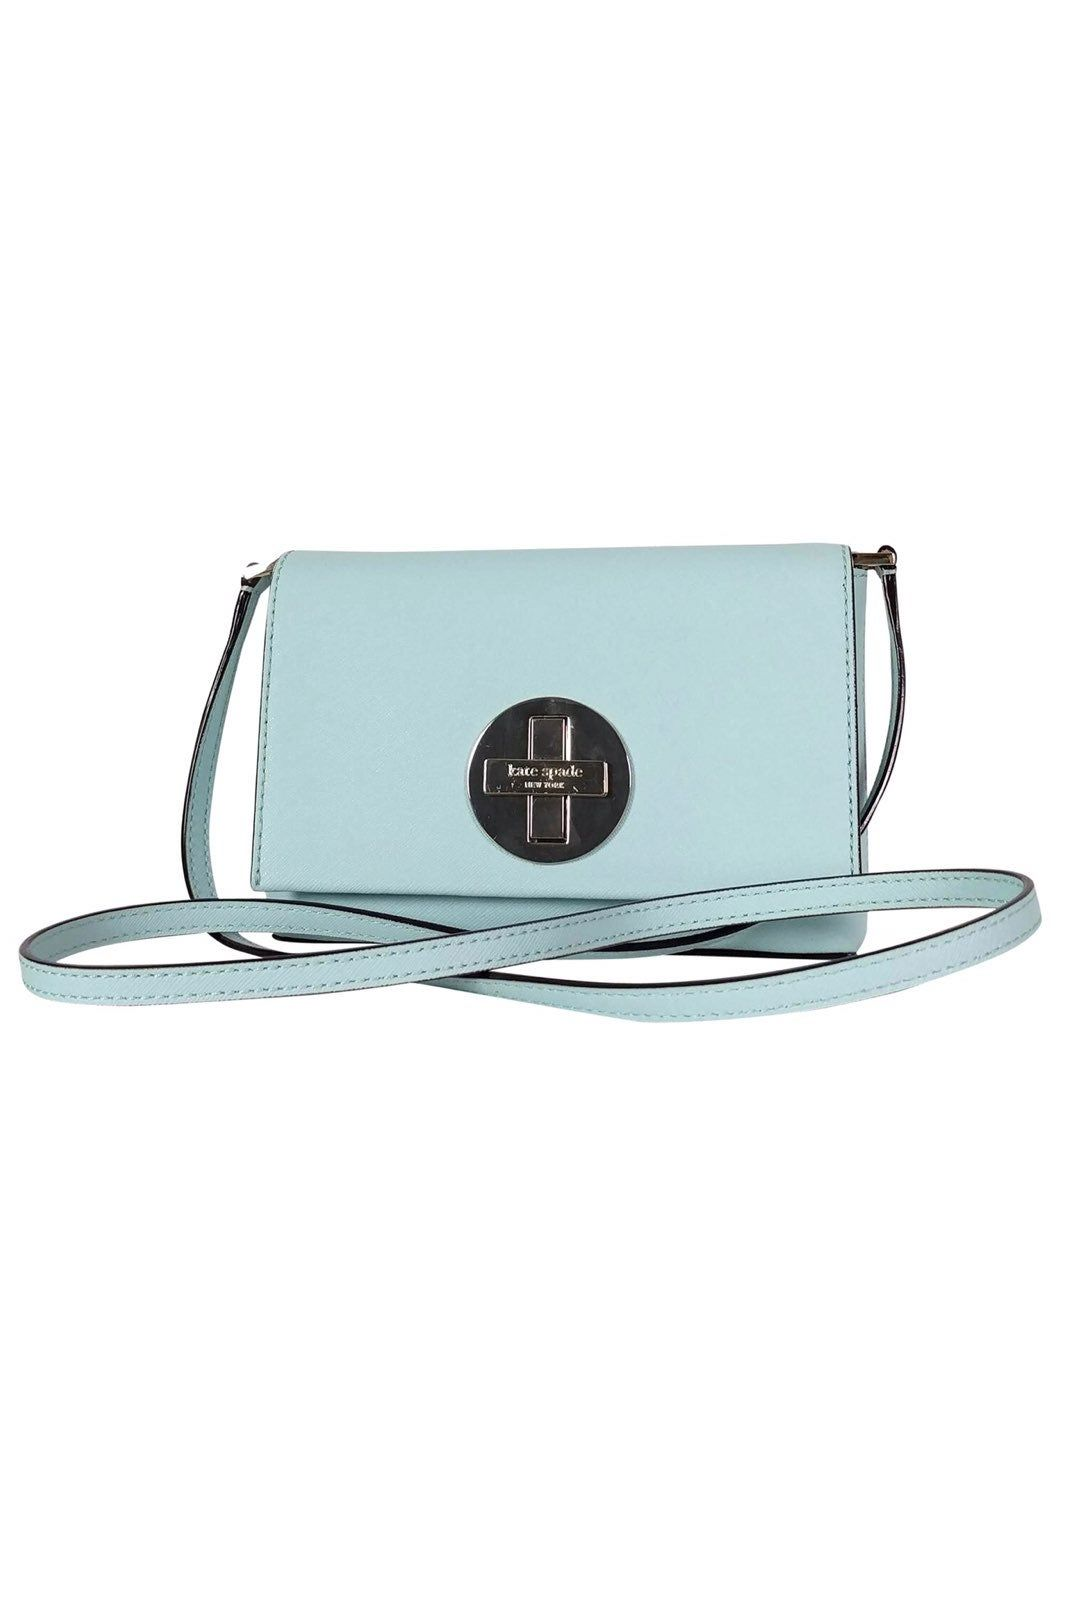 Kate spade small mint blue leather crossbody leather